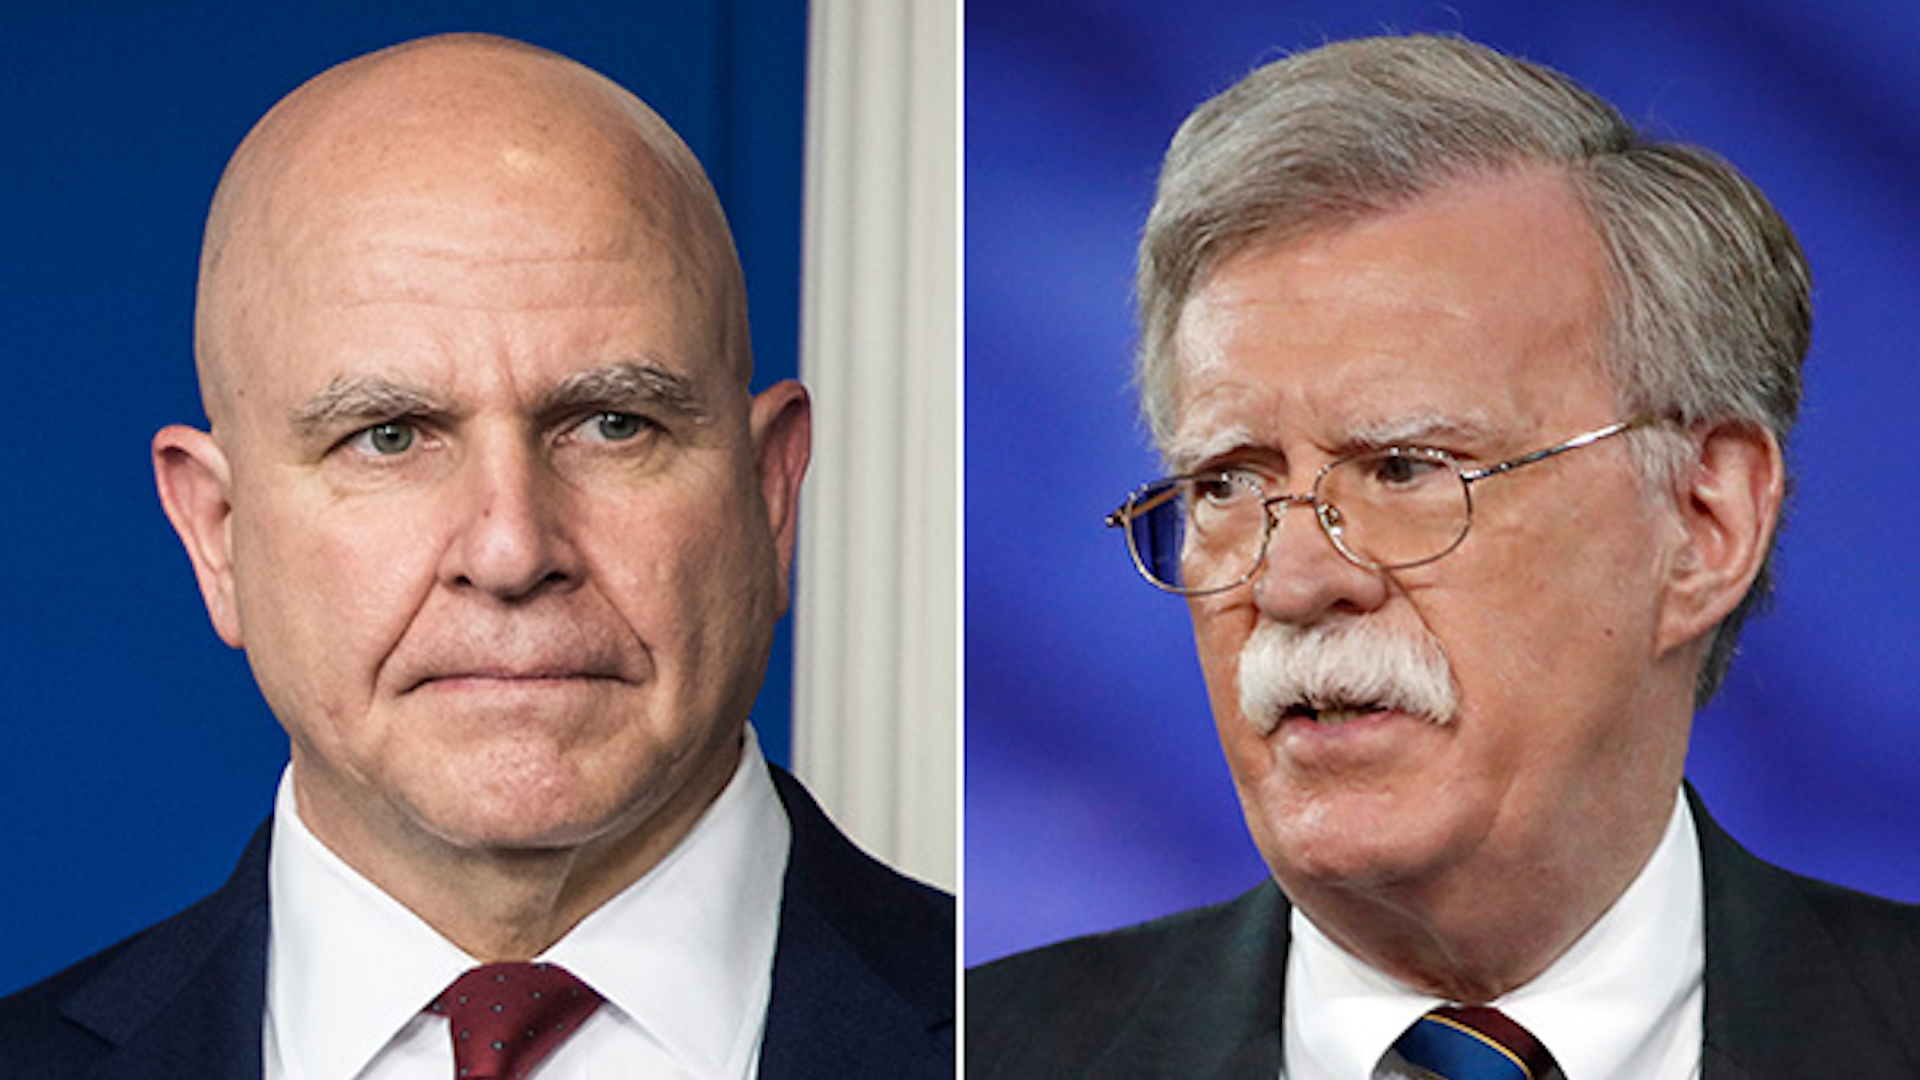 Trump decides to remove national security adviser, and others may follow